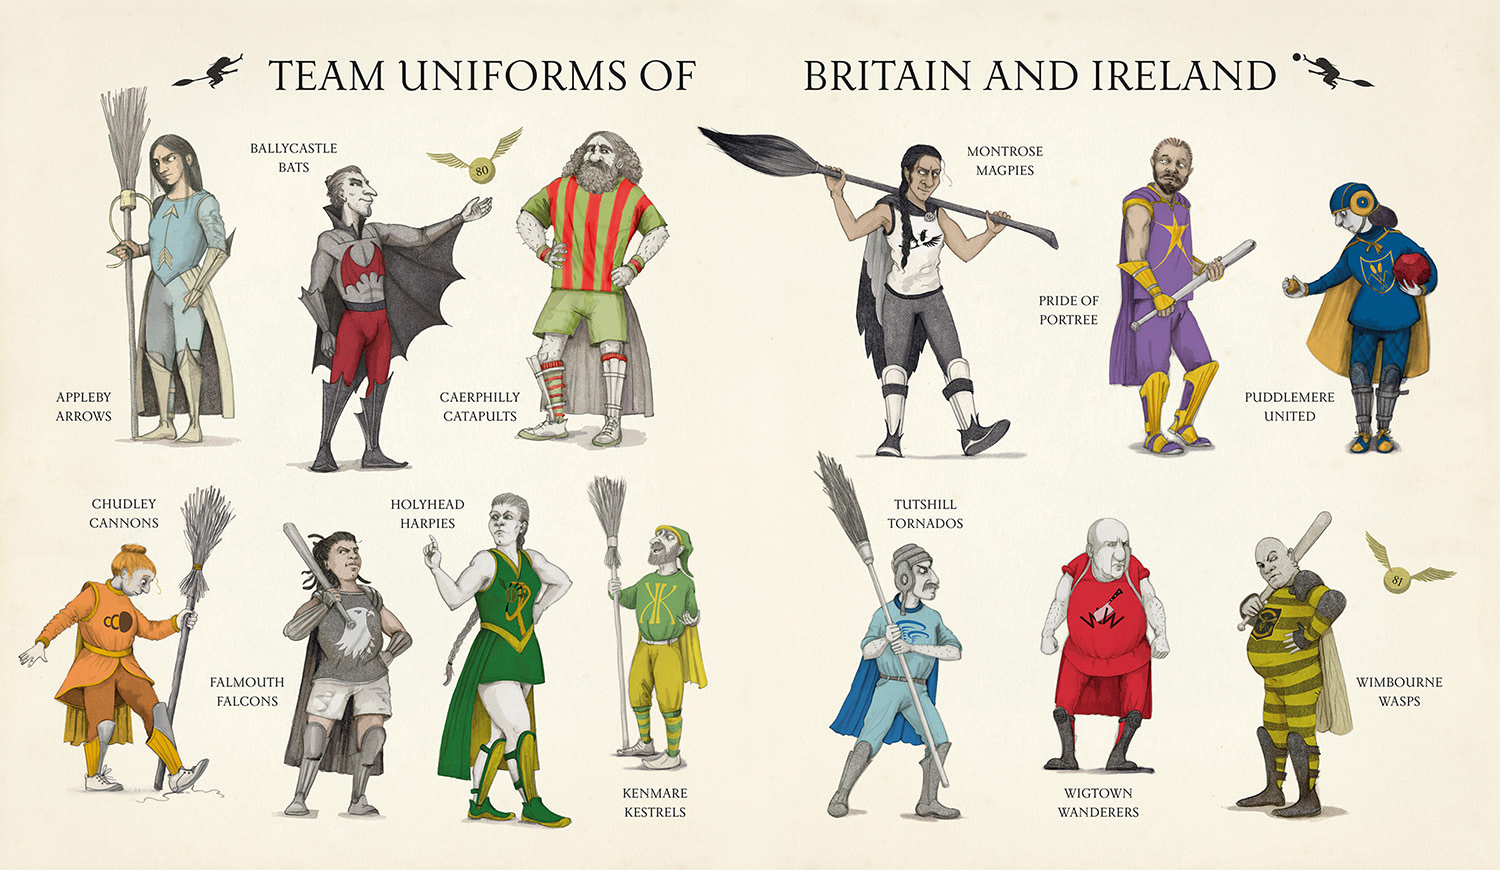 Team uniforms of Britain and Ireland